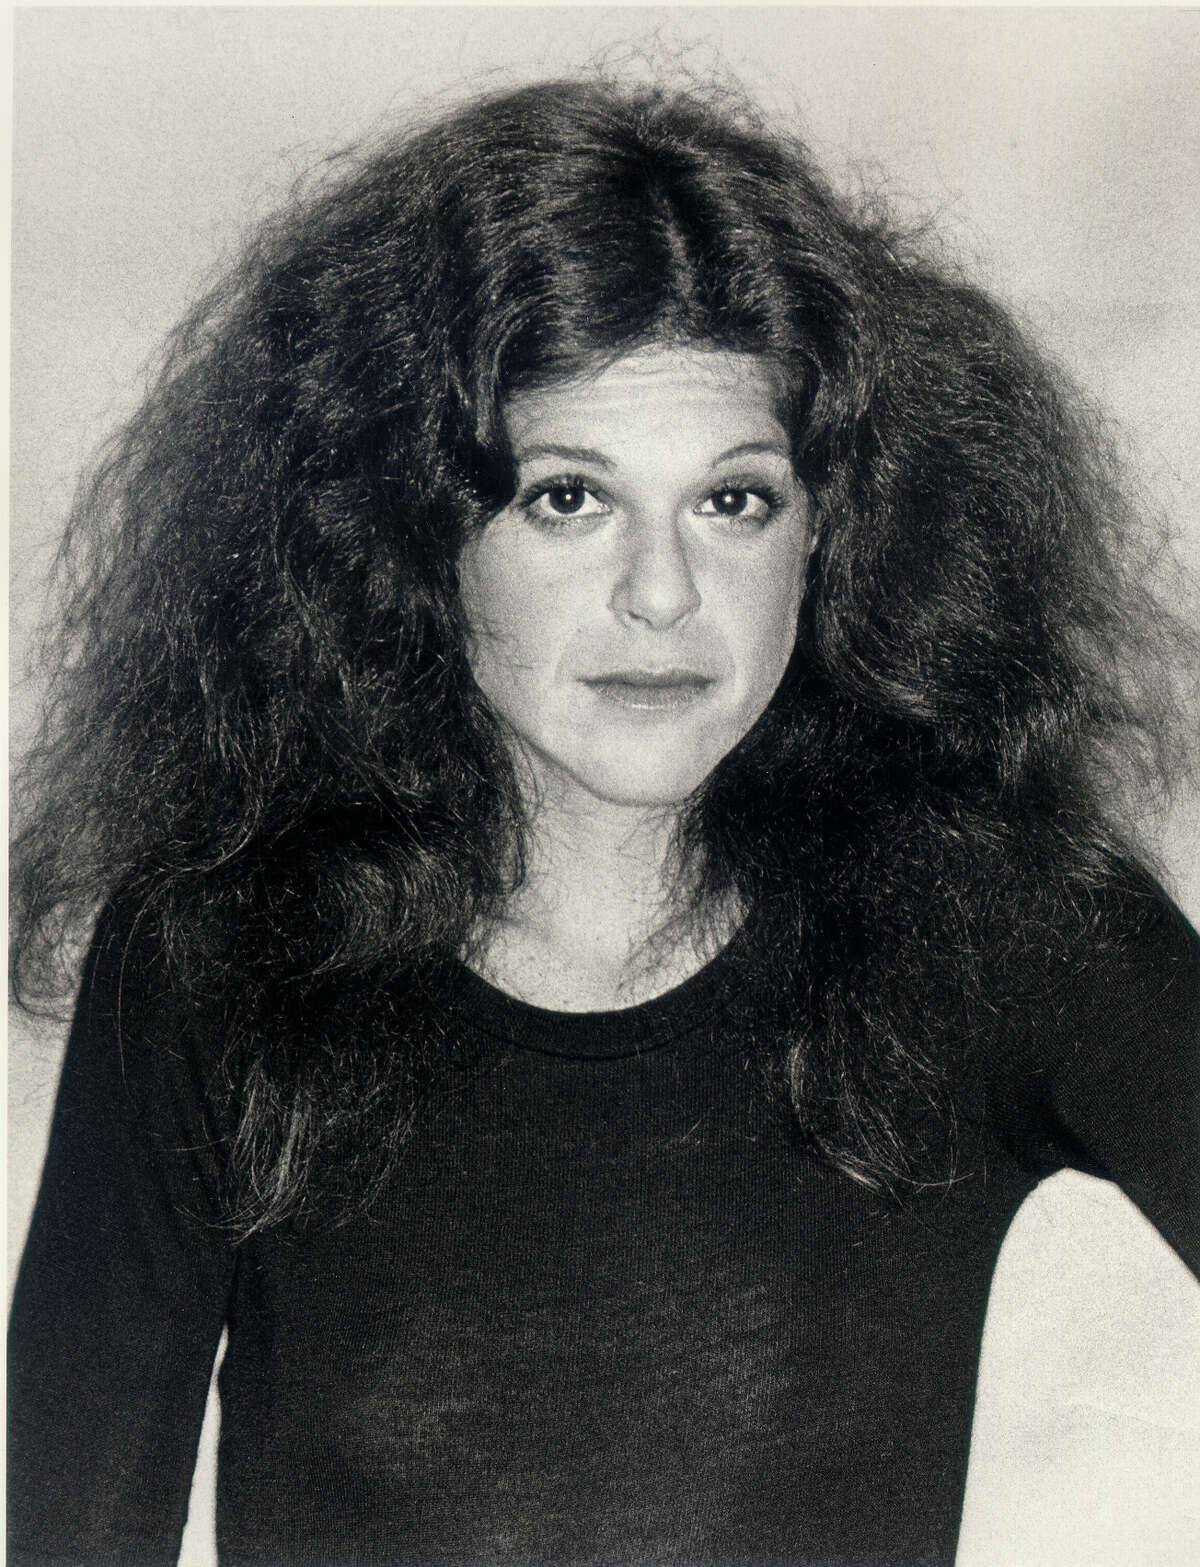 """Gilda Radner Radner, an original cast member of Saturday Night Live is sketch comedy legend. Perhaps best known for her personal advice expert character Roseanne Roseannadanna and """"Baba Wawa"""", a parody of Barbara Walters, the actress died at the age of 42 from cancer. She was married to actor Gene Wilder. Take a look back at some of the most memorable female cast members of Saturday Night Live through the show's 40 year history in this slideshow."""